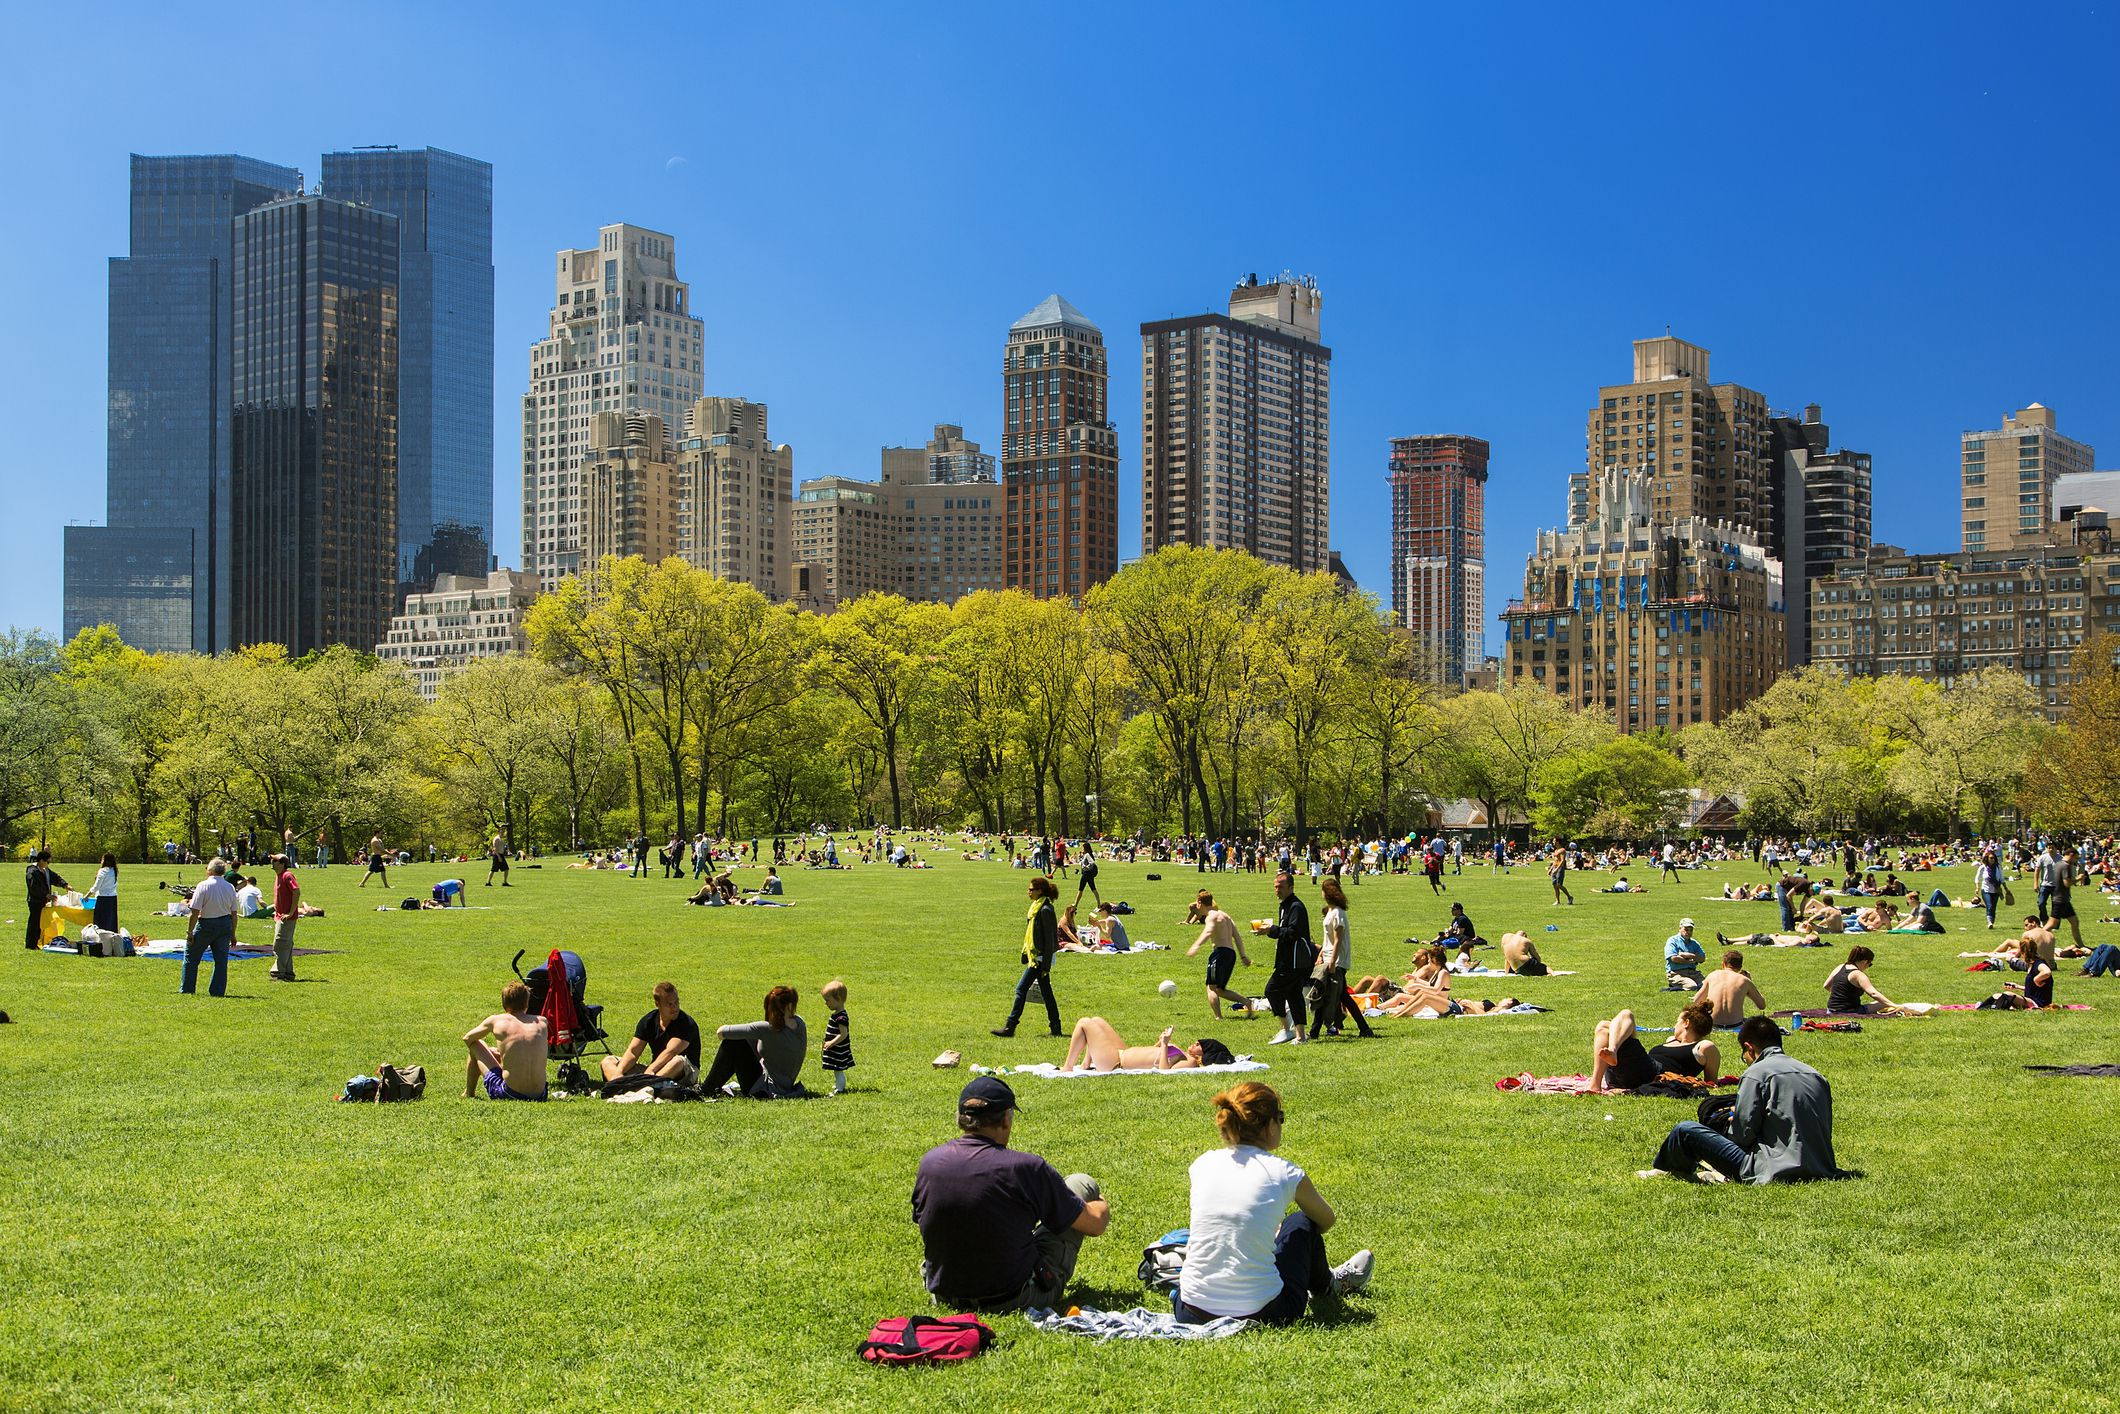 Top 9 Central Park Attractions